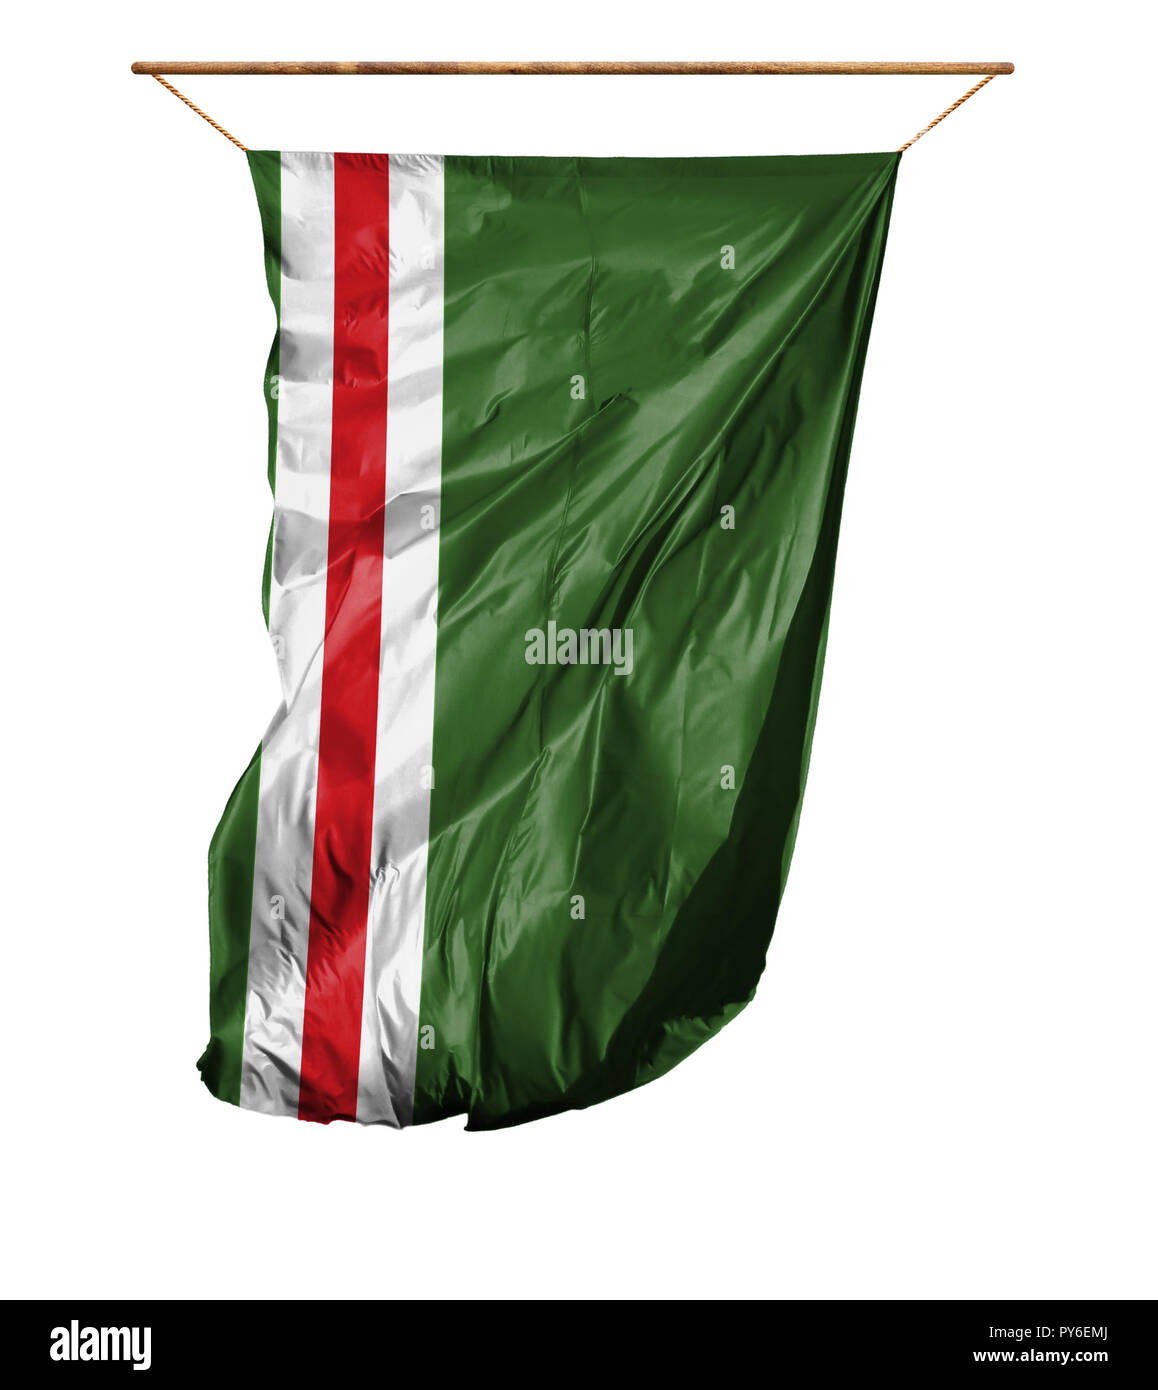 Flag of Chechen Republic of Ichkeria. Vertical flag.Isolated on a white background. - Stock Image